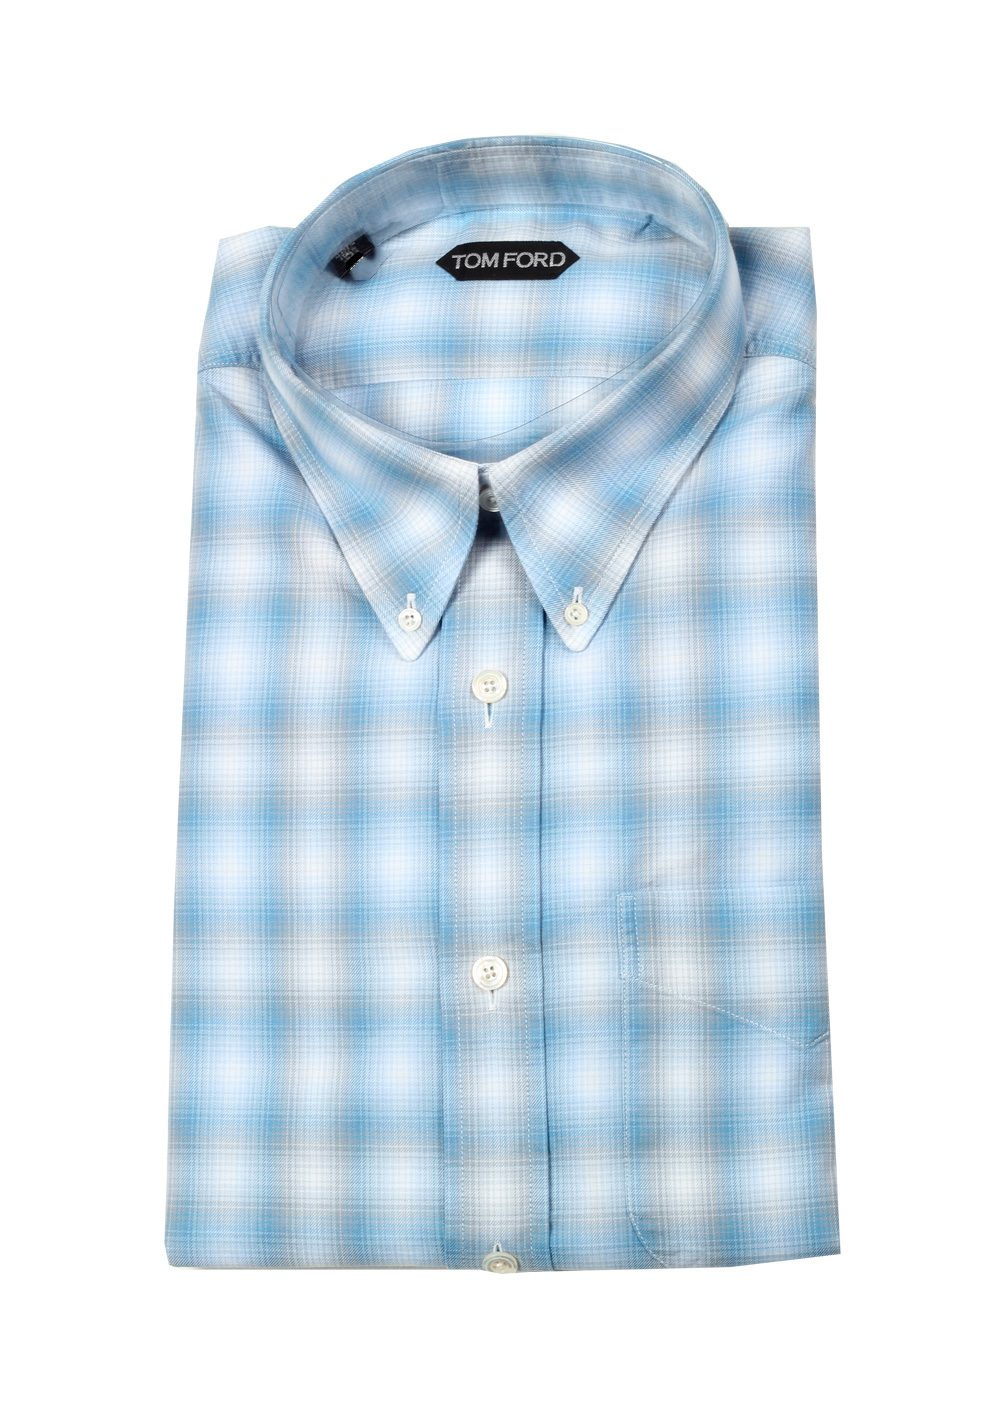 TOM FORD Checked White Blue Button Down Casual Shirt Size 40 / 15,75 U.S. | Costume Limité